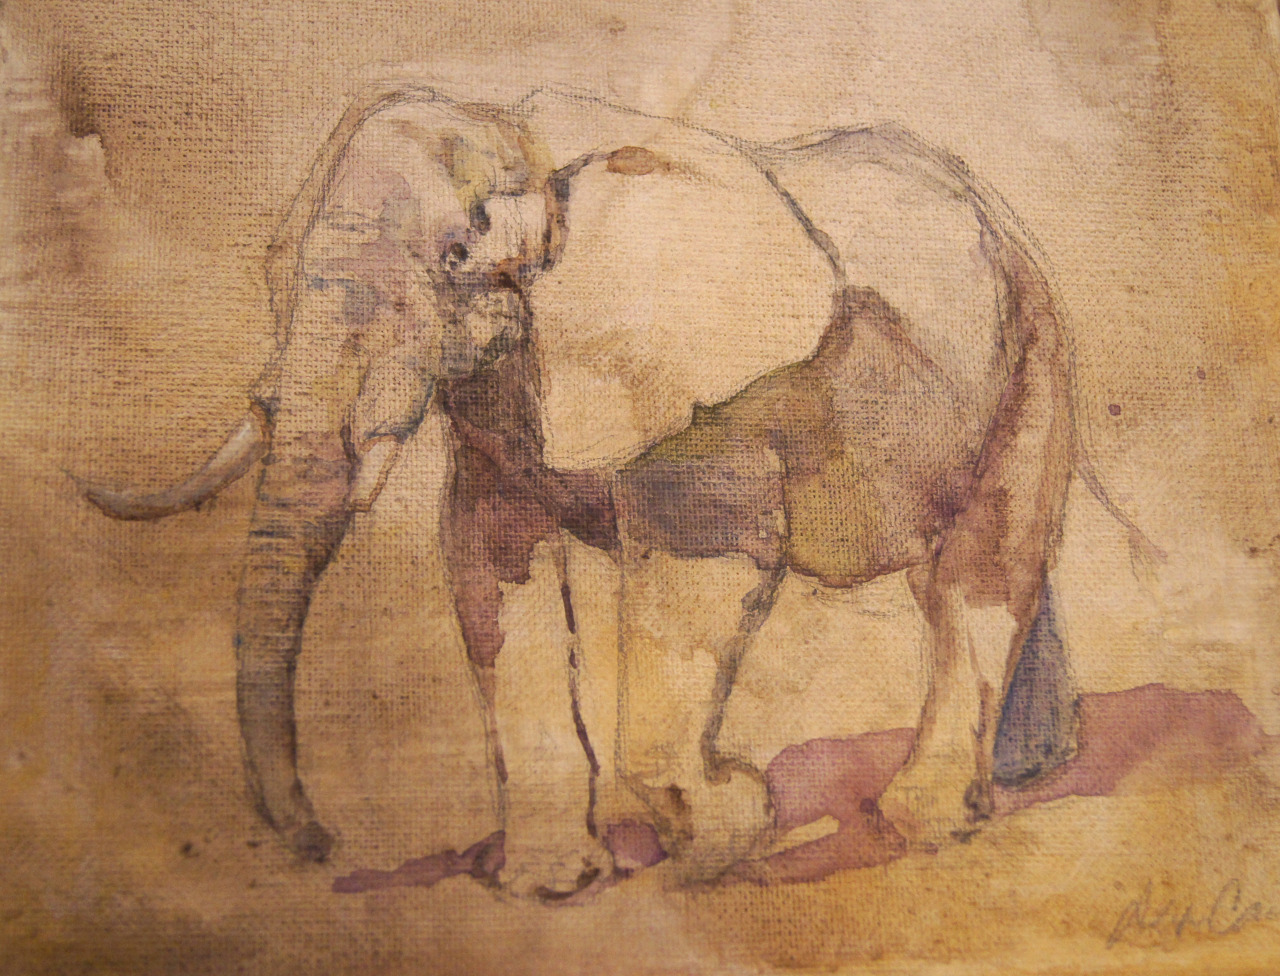 African Elephant! Again, it's a little ways away from my usual bird paintings, but who doesn't like elephants?   I know it looks like watercolor, but it is actually acrylic on canvas. I did a wash for the background, then did a pencil sketch on top of that. Then I filled in the shadow areas with very watered down acrylic. I think I was pretending that it was watercolor. Sometimes I've just got to paint on a canvas! Hence the acrylics!   I sold this fella at the art sale. Or rather, yesterday. A woman was torn between two paintings and bought the egret instead of the elephant. Then she called the day after and asked if the elephant had sold. This may sound silly, but I like it when I know my paintings are going to a good home. It's like… giving up a little part of myself every time I sell or give away a painting. She was thinking about this guy even when she got home, so I know he's a happy elephant now.   I think I've had too much caffeine…